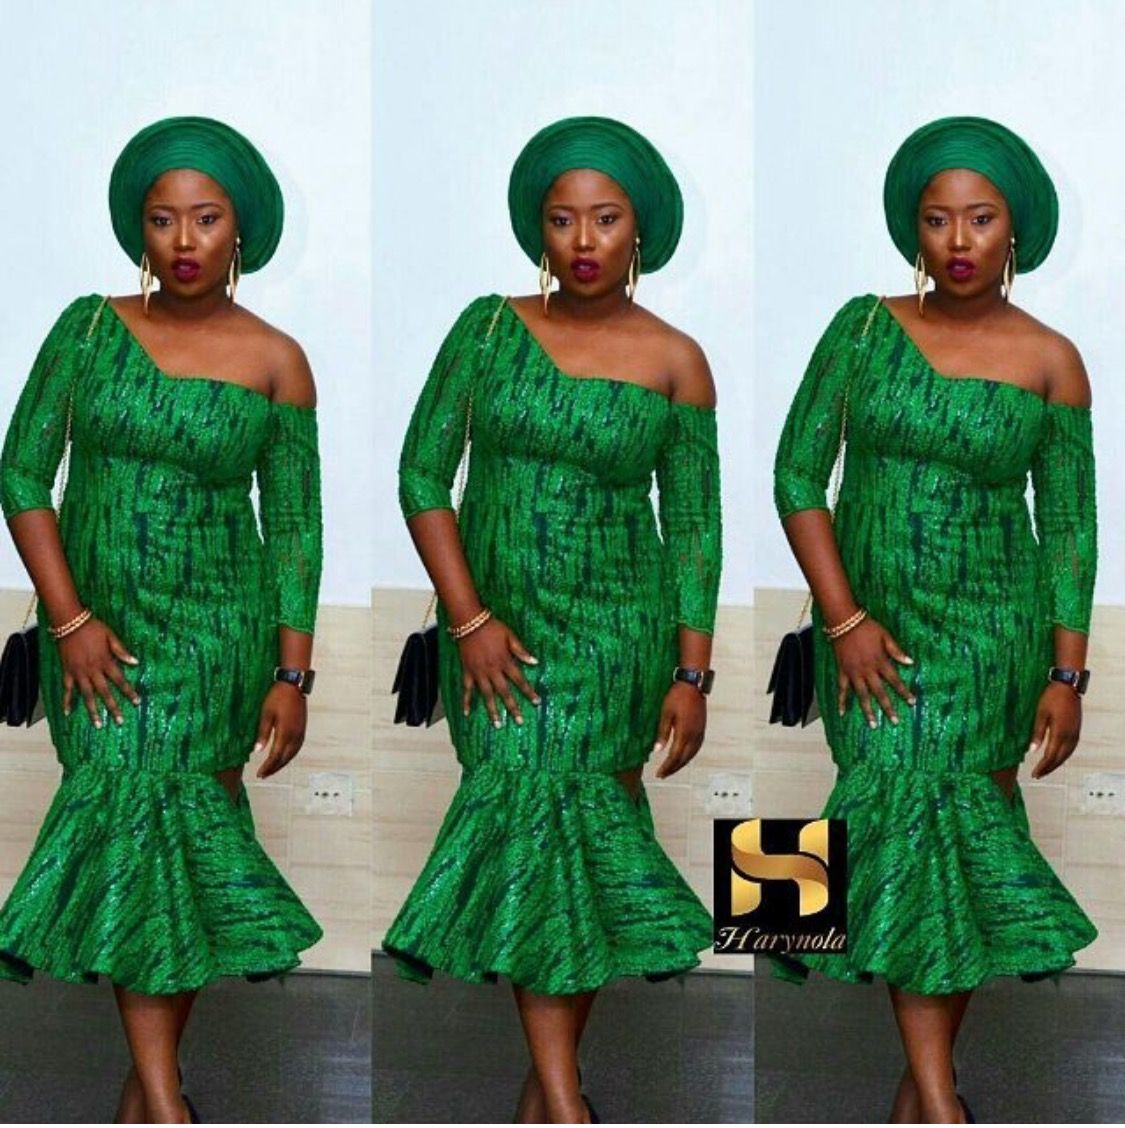 Pin by Ennybaby20 on Aso Ebi | Pinterest | Aso ebi, Aso and African ...